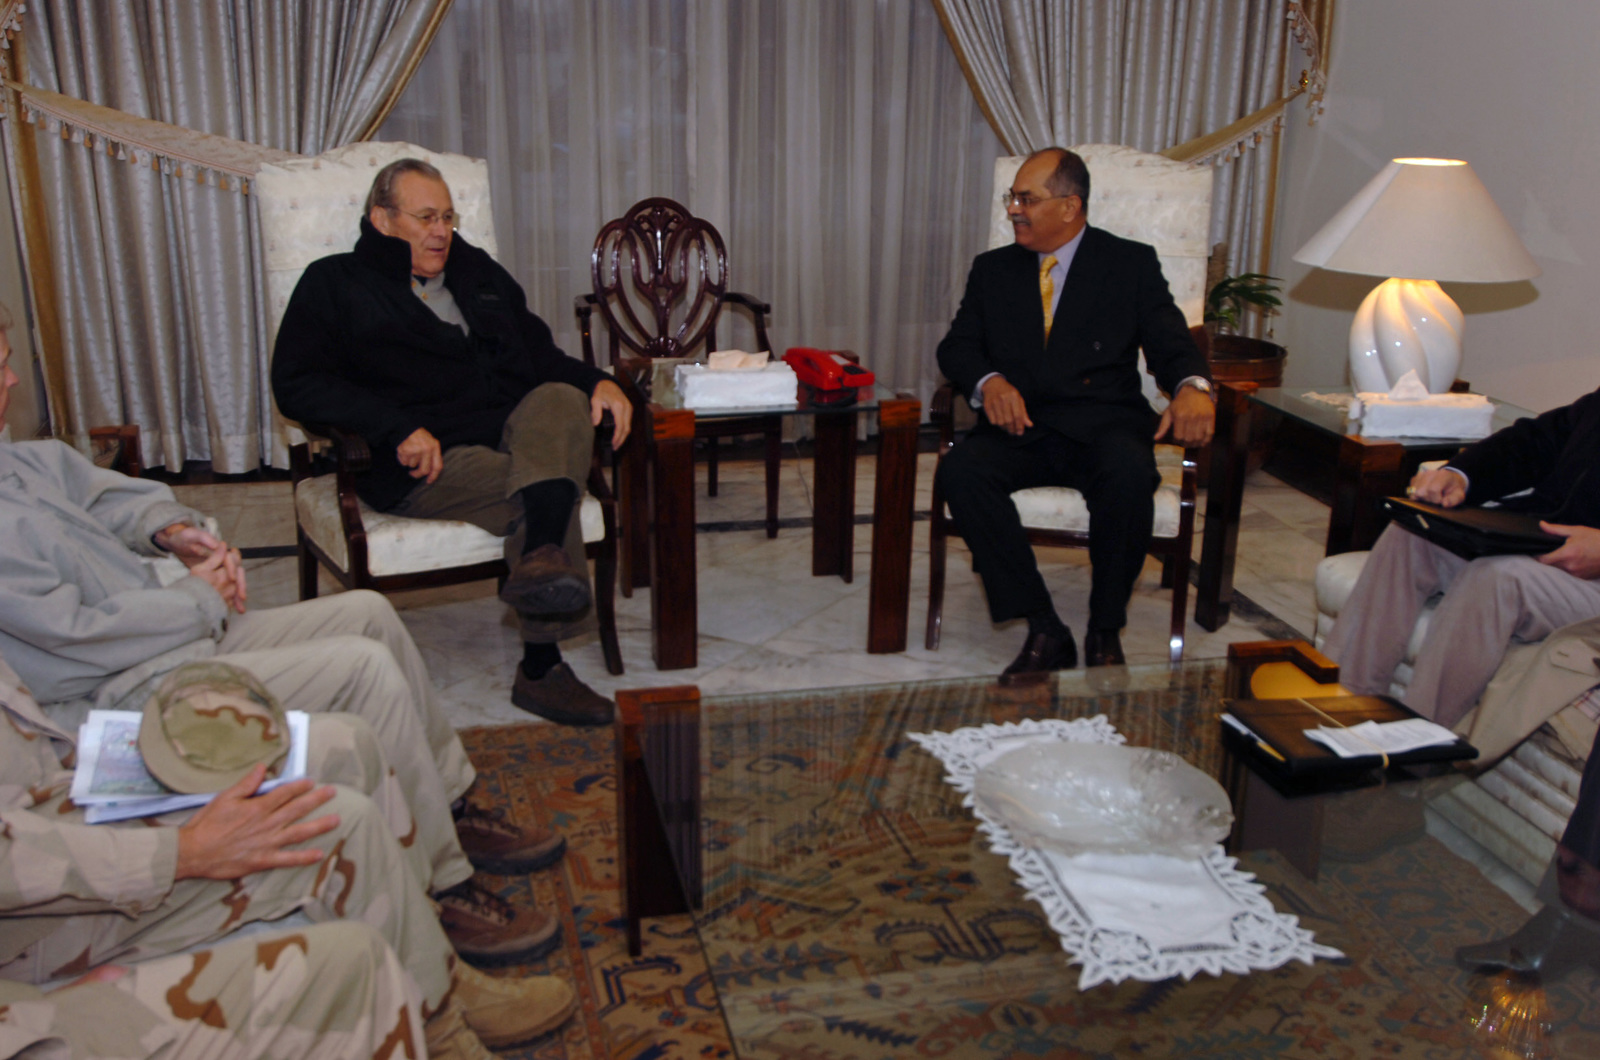 The Honorable Donald H. Rumsfeld (left), U.S. Secretary of Defense (SECDEF), and Tariq Wasim Gazi, Pakistan Minister of Defense, meet in Islamabad, Pakistan, Dec. 21, 2005, during the SECDEF visit to the affected areas of the Oct. 8, 2005 earthquake and to support the U.S. effort to aid the victims of the region.  (DoD photo by PETTY Officer 1ST Class Chad J. McNeeley) (Released)